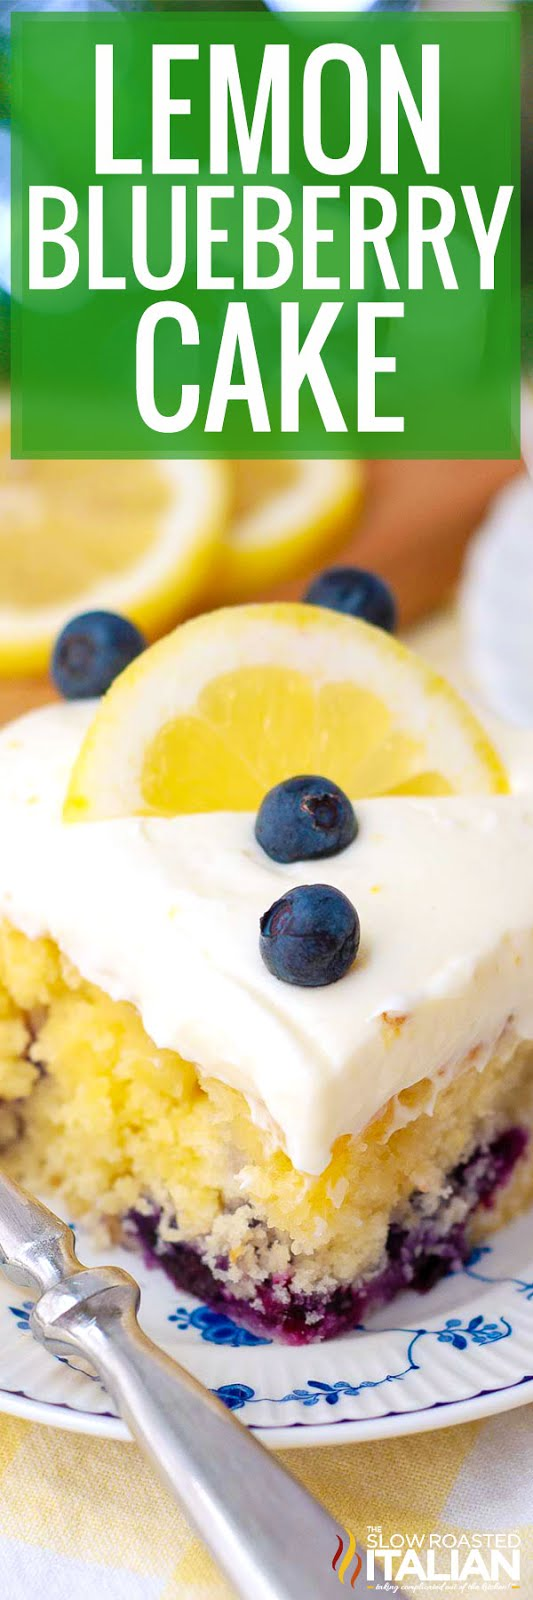 titled photo collage (and shown): Lemon Blueberry Cake